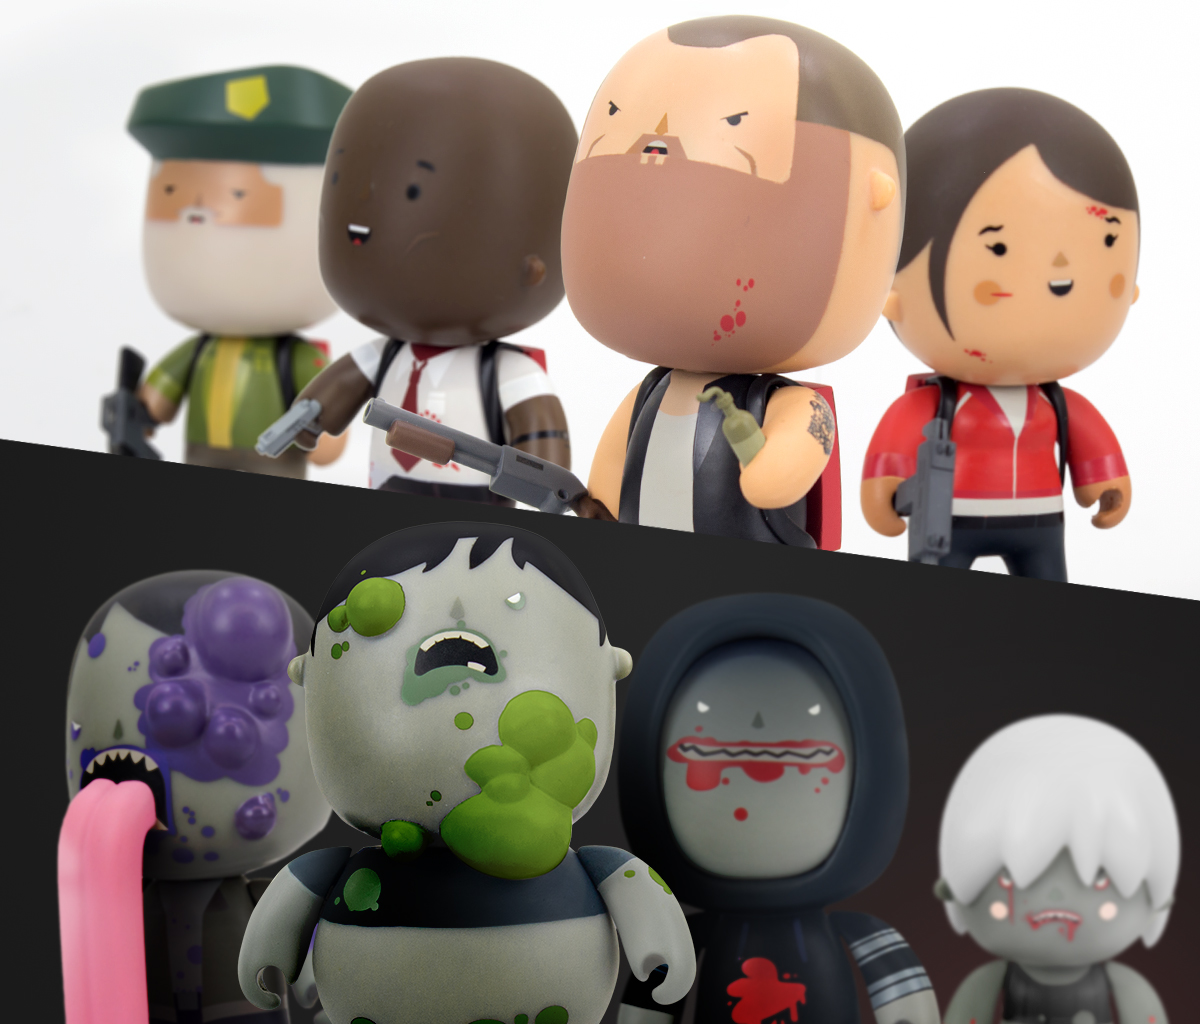 Left 4 Dead Vinylkins Collection Up for Preorder!